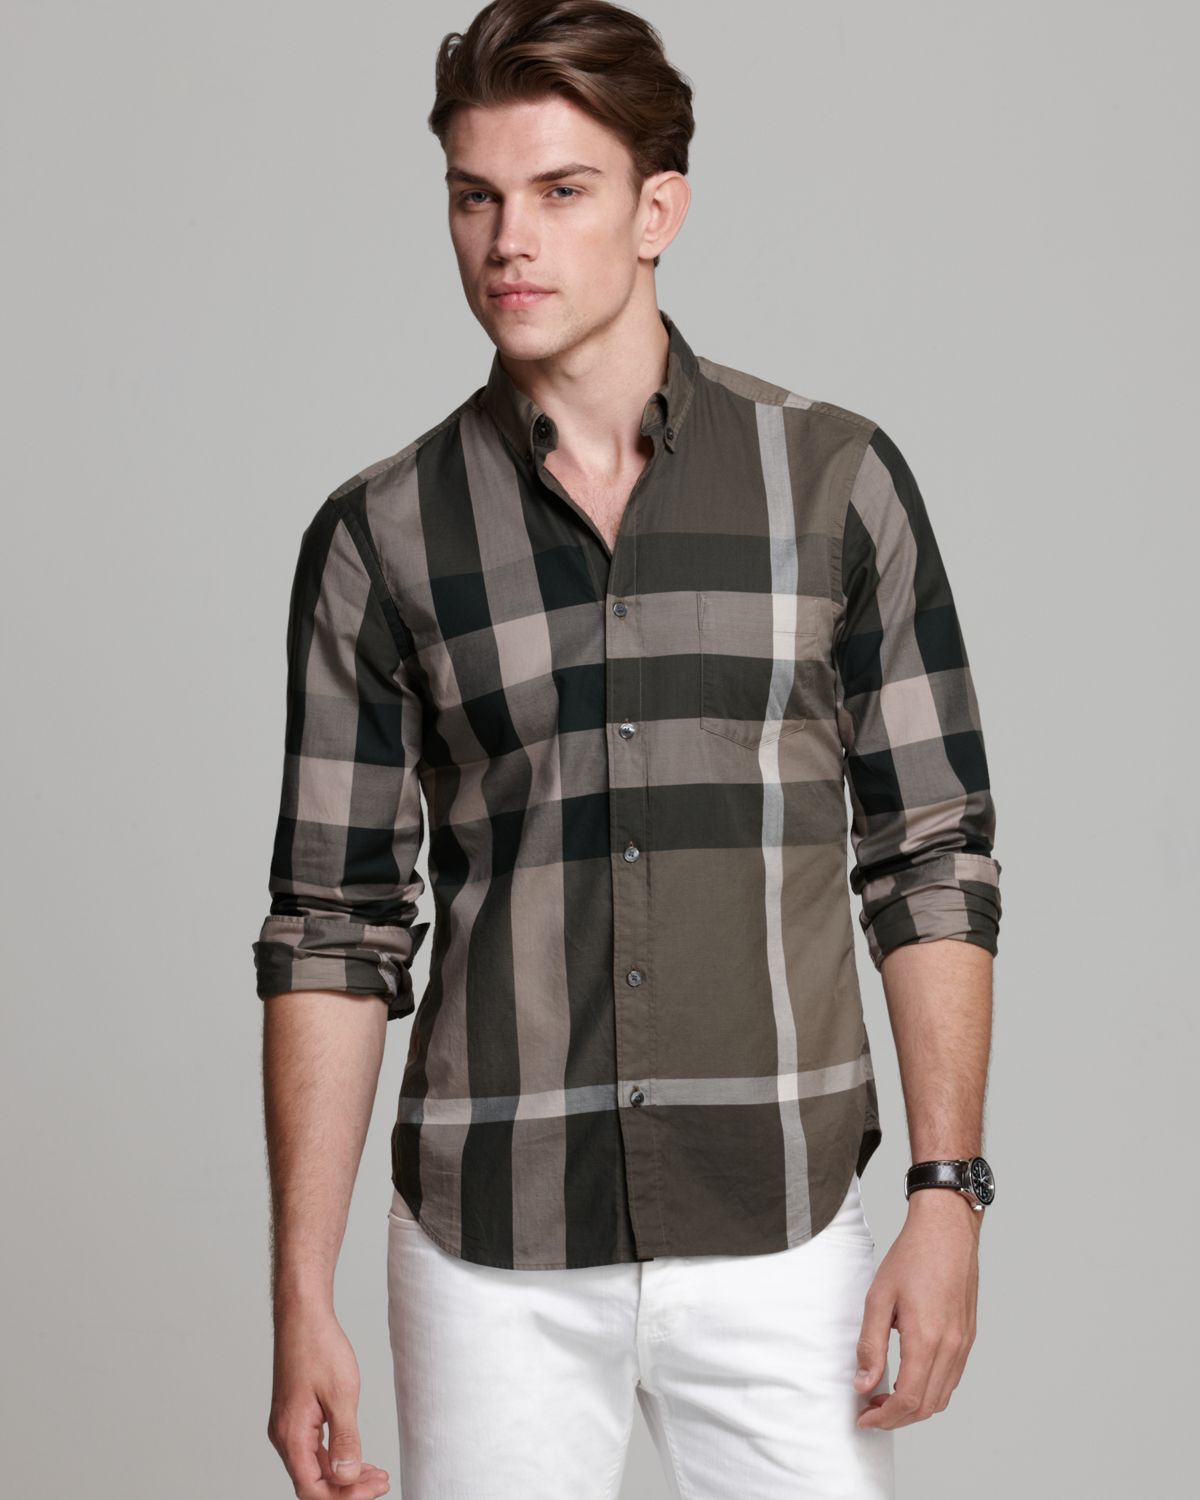 Ralph Lauren Linen Shirts For Men